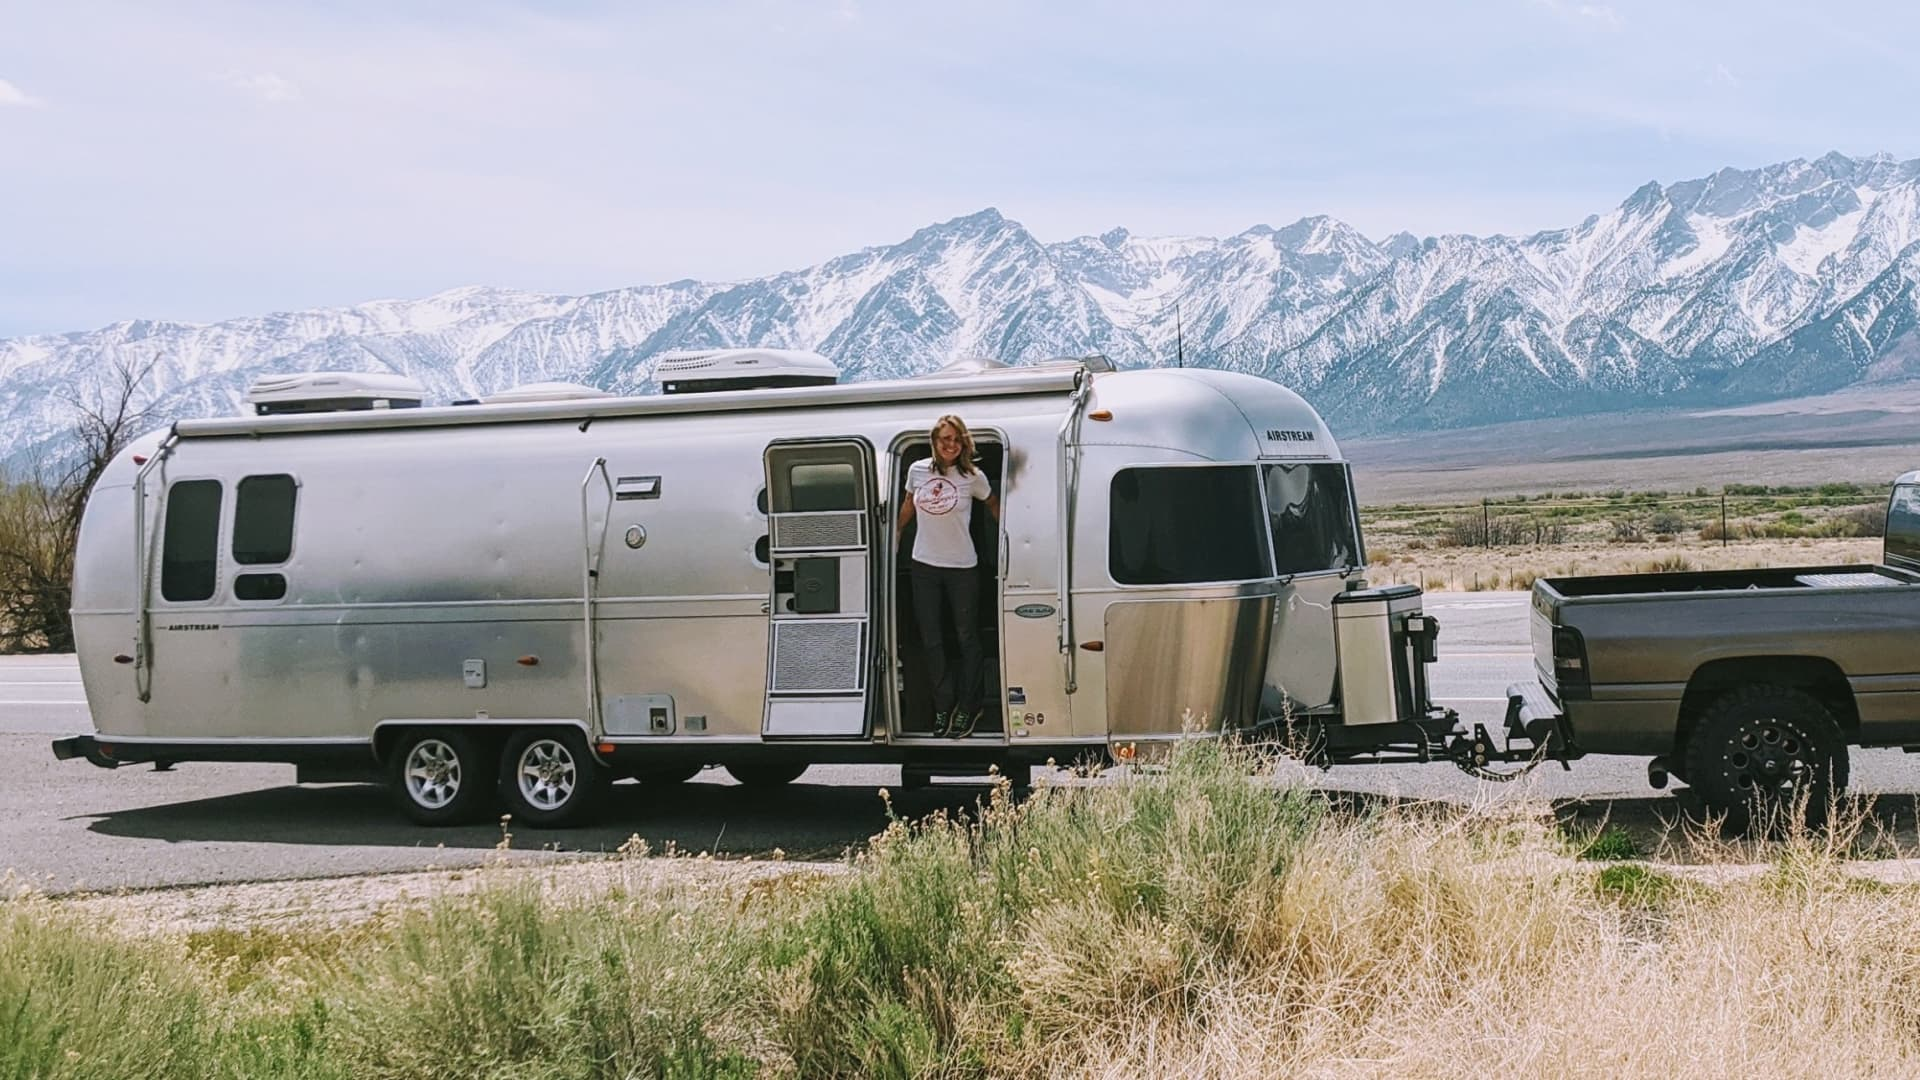 Kelli Compton, 35, stands in her Airstream RV in Wyoming.